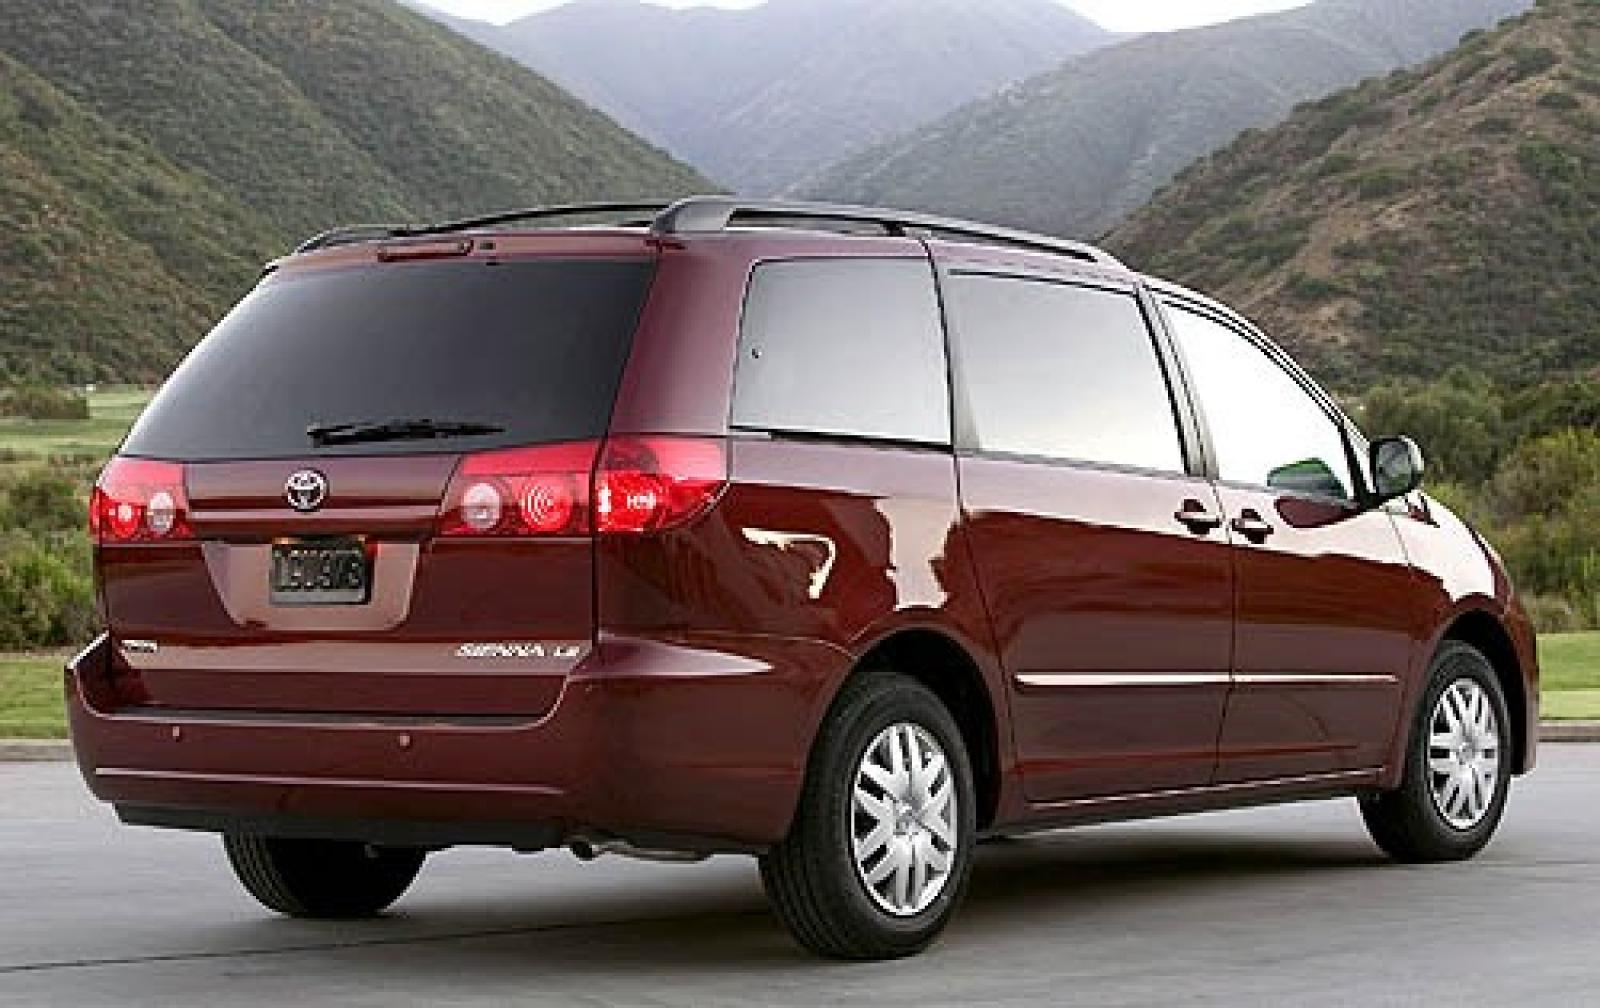 2008 toyota sienna information and photos zombiedrive. Black Bedroom Furniture Sets. Home Design Ideas